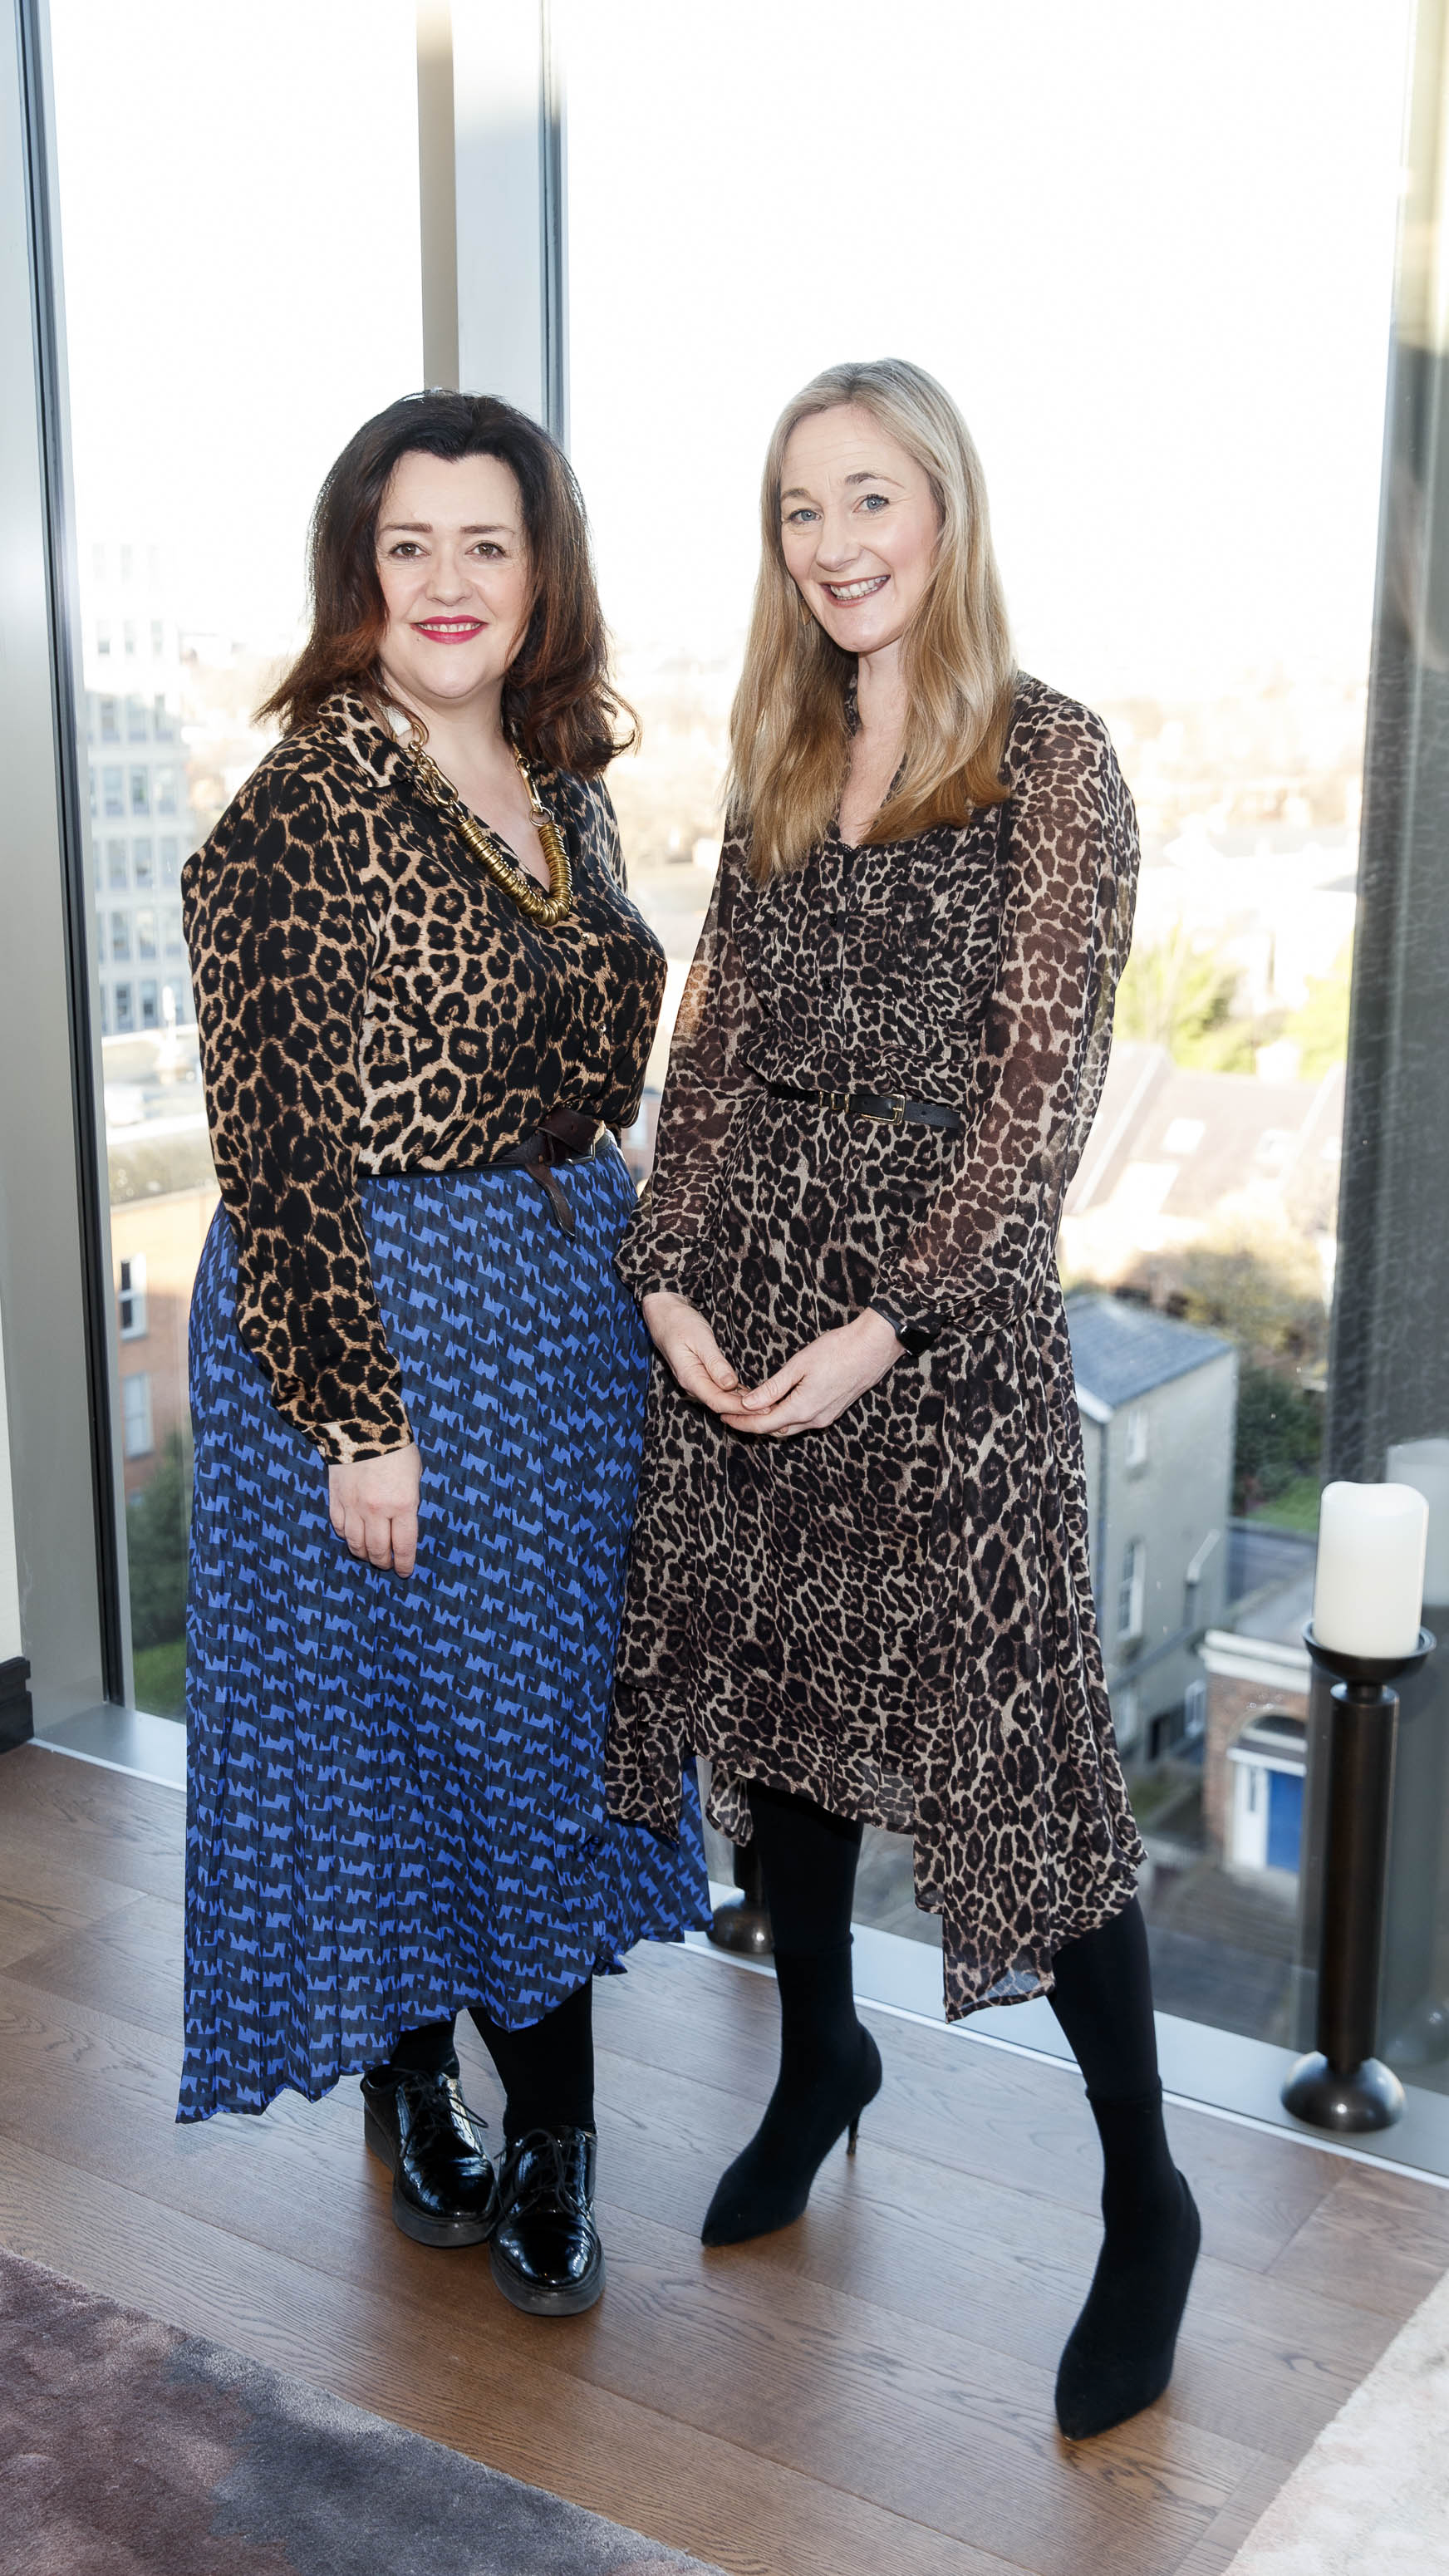 Kirstie McDermott and Ciara Elliott pictured at the launch of Miele Triflex. The world's leading manufacturer of cylinder vacuum cleaners, Miele, unveiled its first ever cordless handstick model at the stunning Landsdowne Place penthouse. Hosted by Miele managing director, Pat McGrath and in conversation with Dermot Bannon and Ciara Elliott, guests experienced the ultimate cordless vacuum cleaner, which is available in all major retailers from €499. Picture Andres Poveda